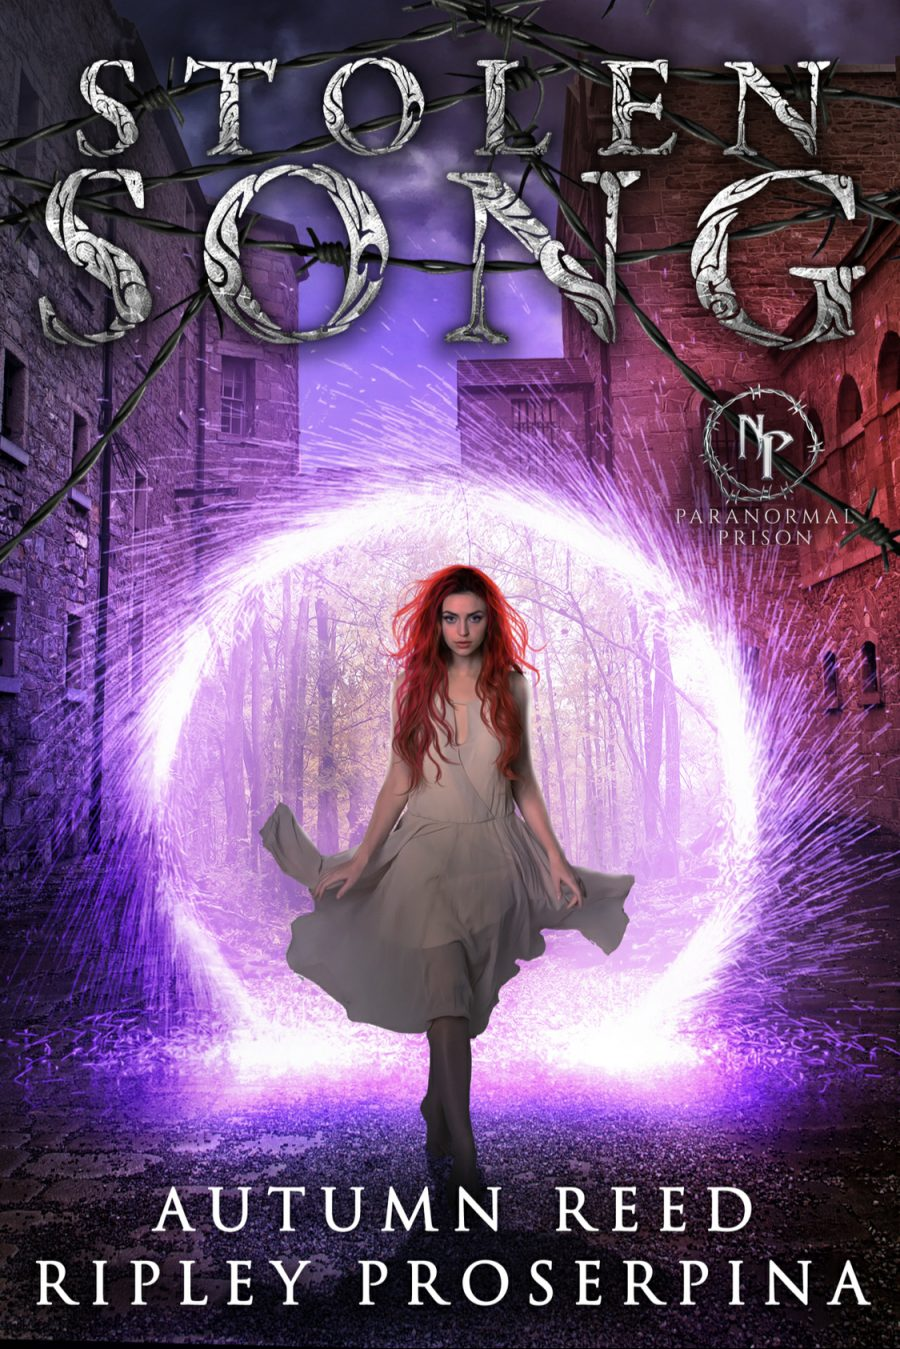 Stolen Song by Autumn Reed & Ripley Proserpina - A Book Review #BookReview #RH #PNR #ParanormalPrison #4Stars #HEA #StandAlone #KindleUnlimited #KU